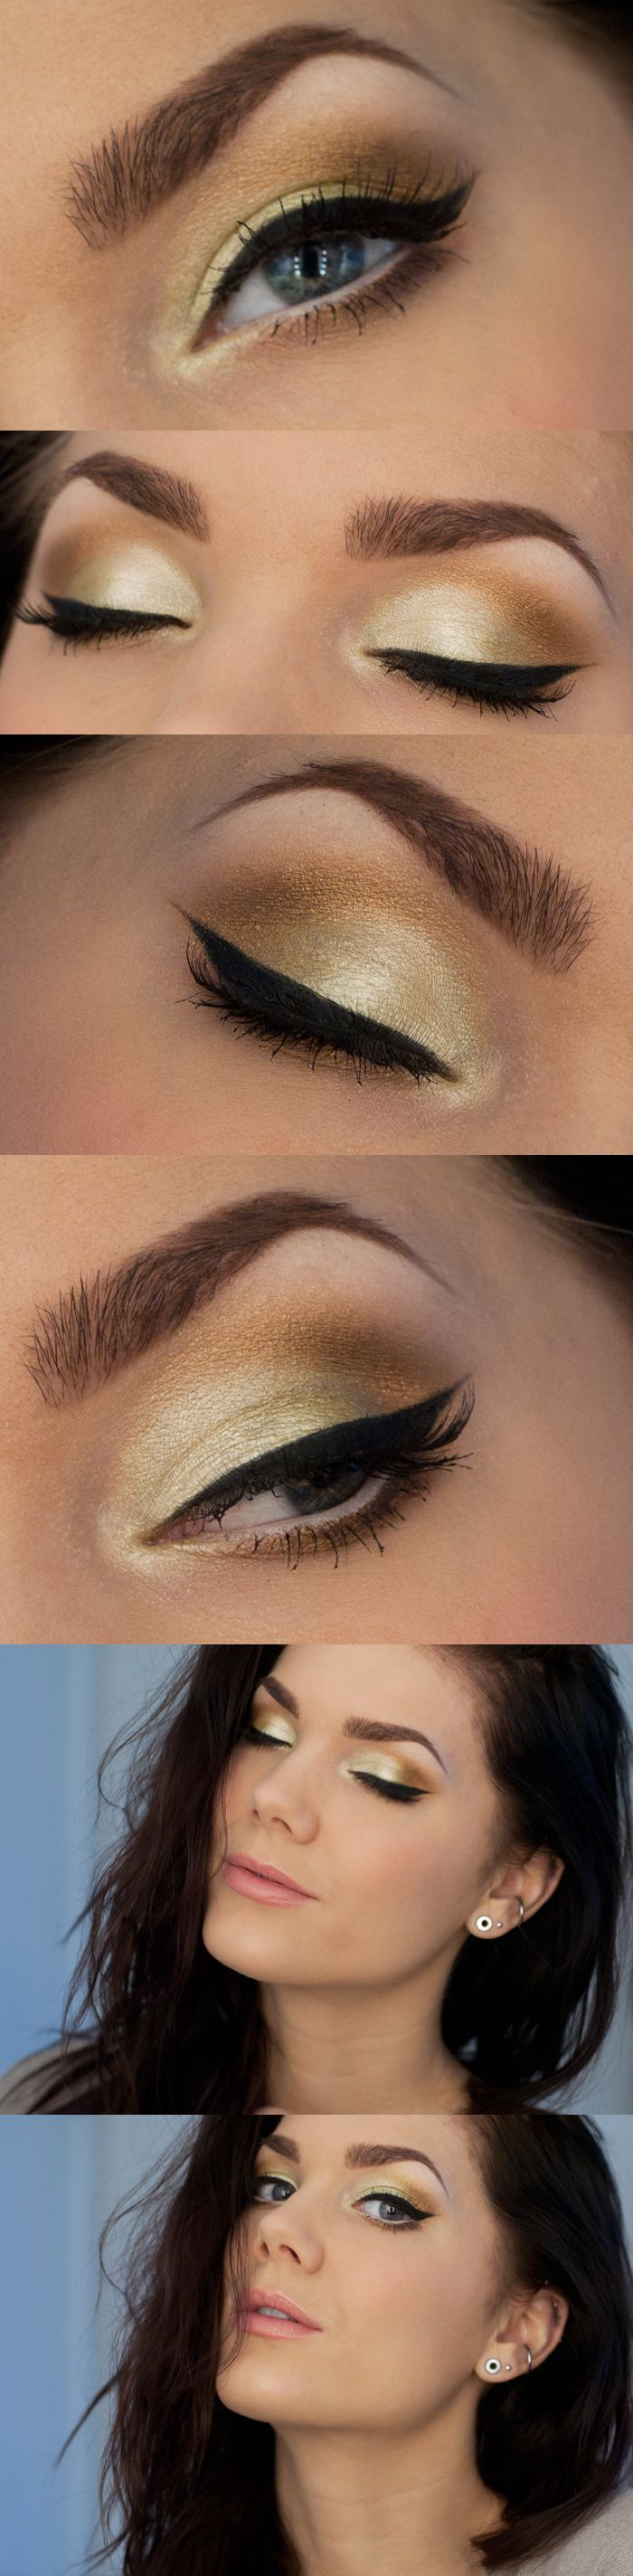 Who doesn't love Linda's great work. We love the yellow gold on her eyes, very similar to UD Midnight Cowgirl. Get yours here http://www.ebay.com/sch/loledeux/m.html?_nkw=&_armrs=1&_from=&_ipg=25&_trksid=p3686 #loledeux